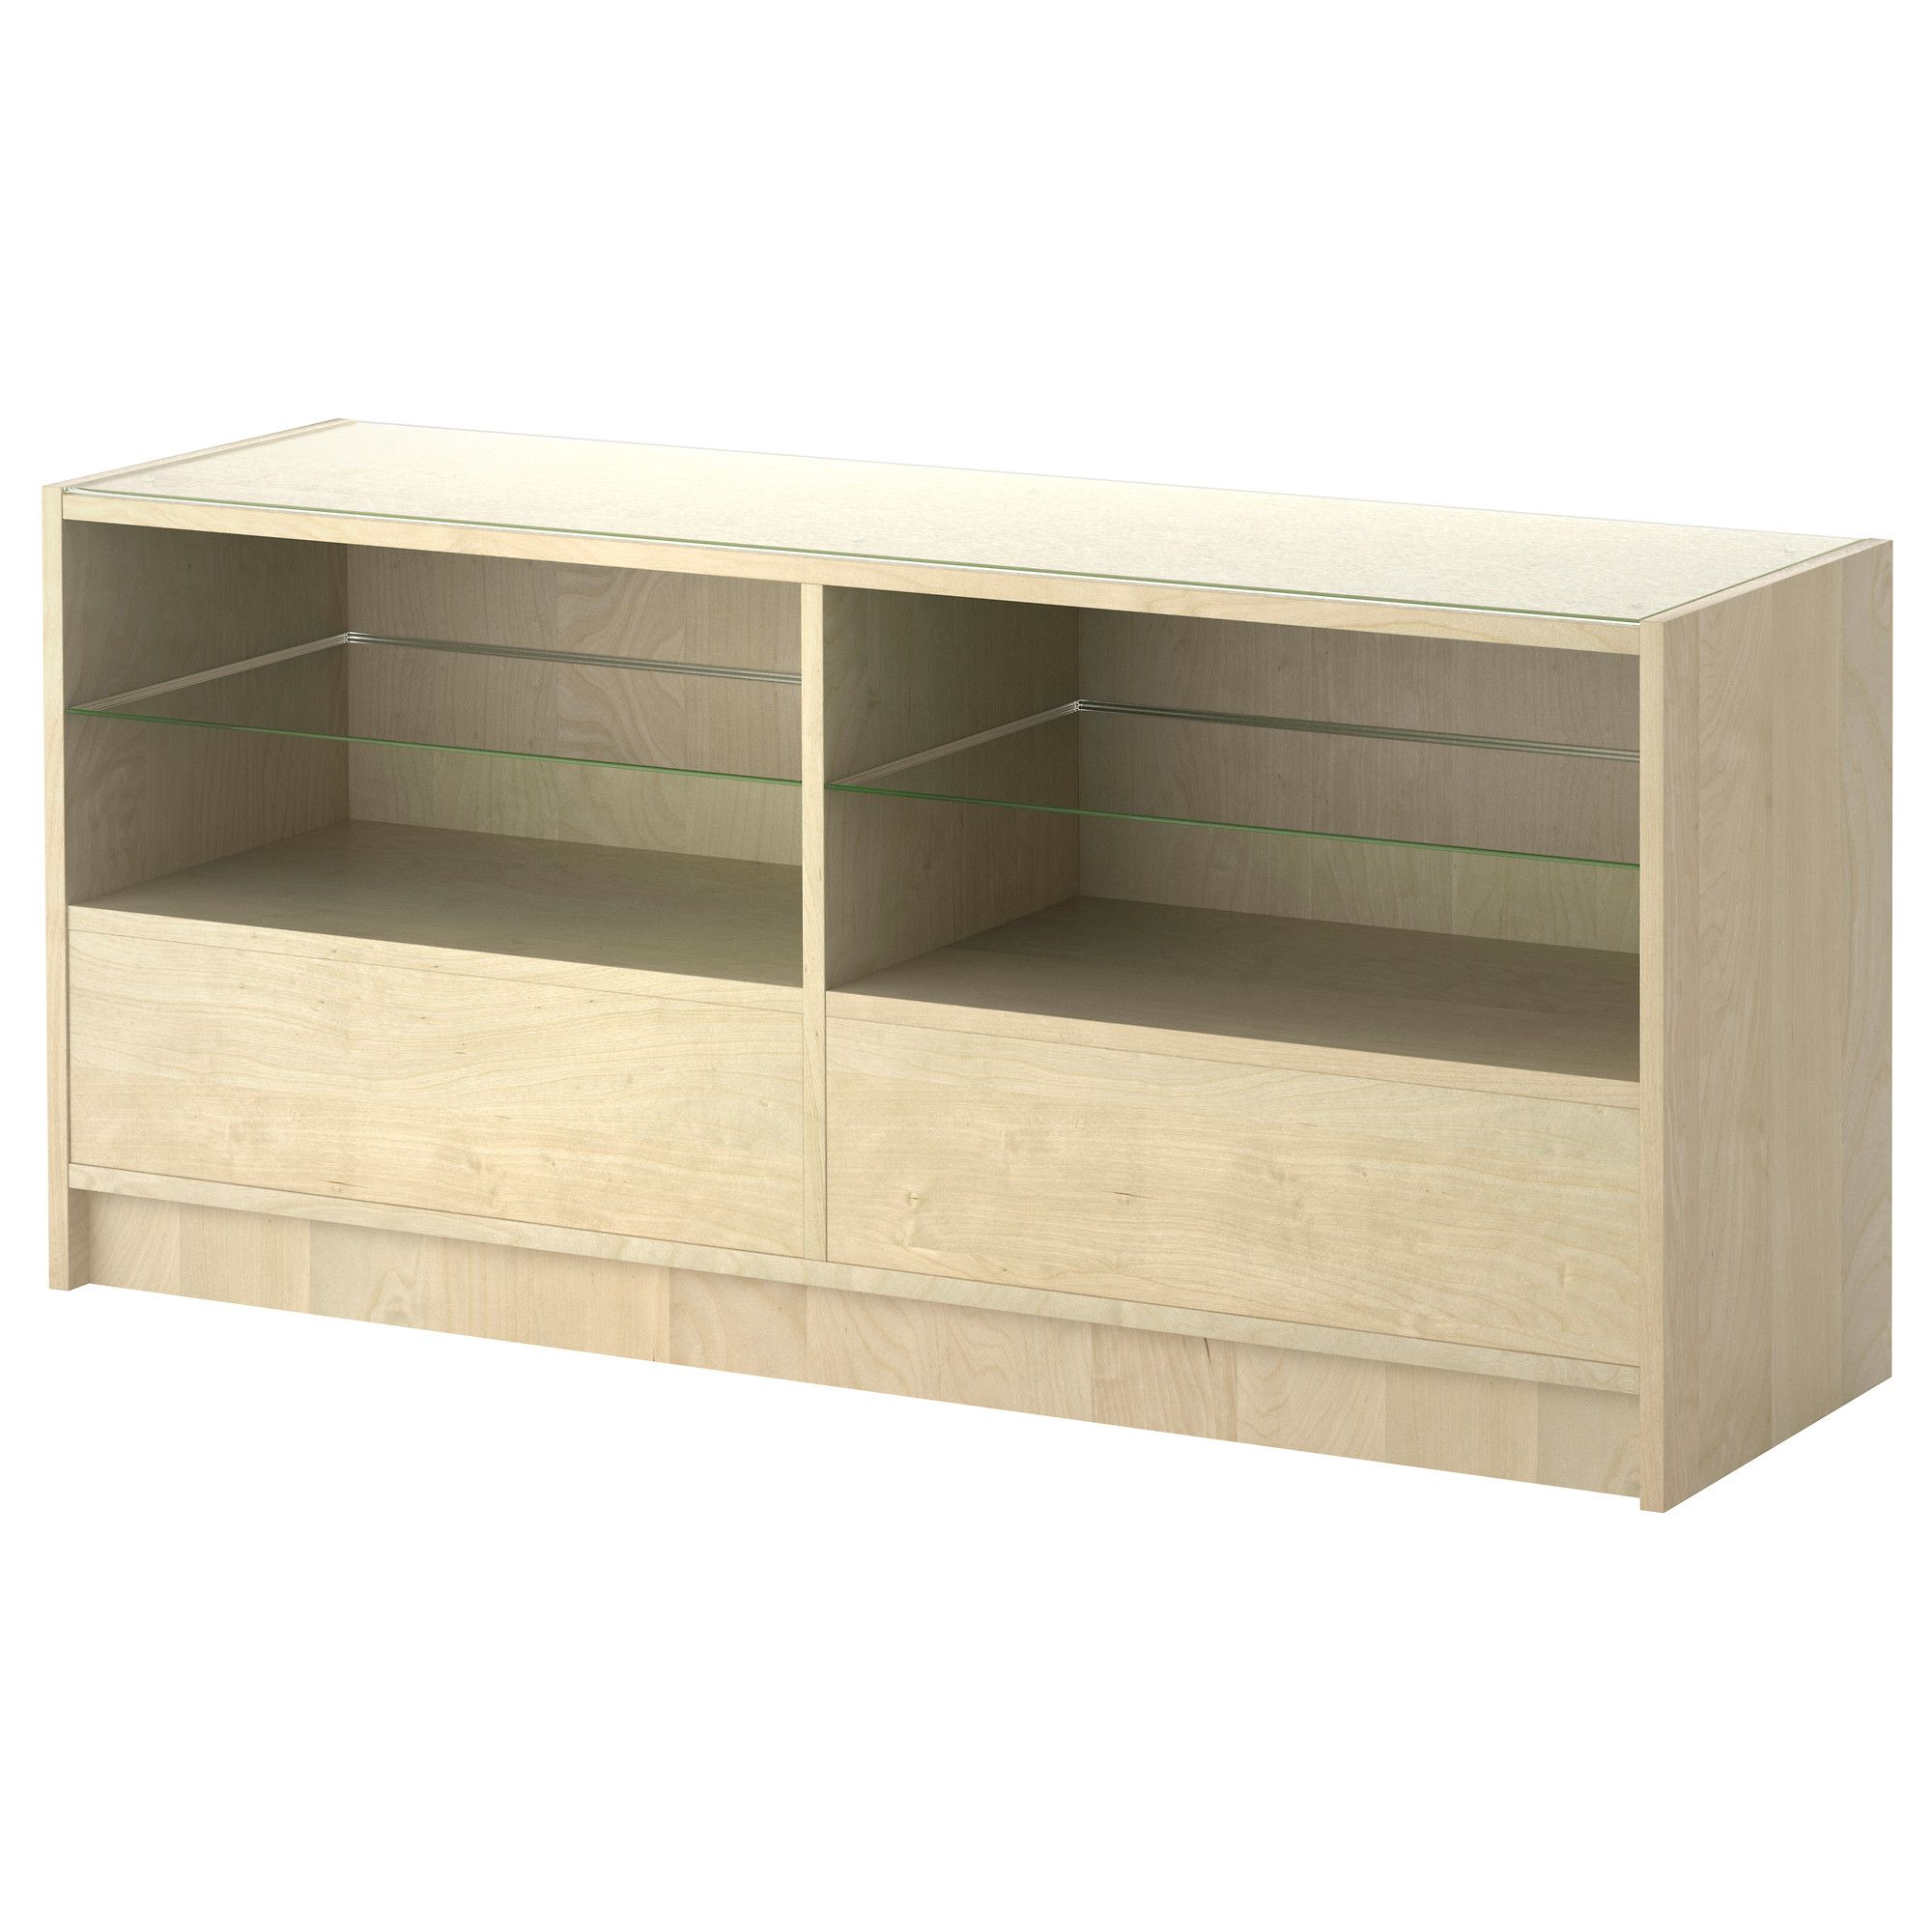 sofa table with storage ikea. IKEA Living Room Storage Furniture: Sideboards, Buffets, And Sofa Tables Table With Ikea